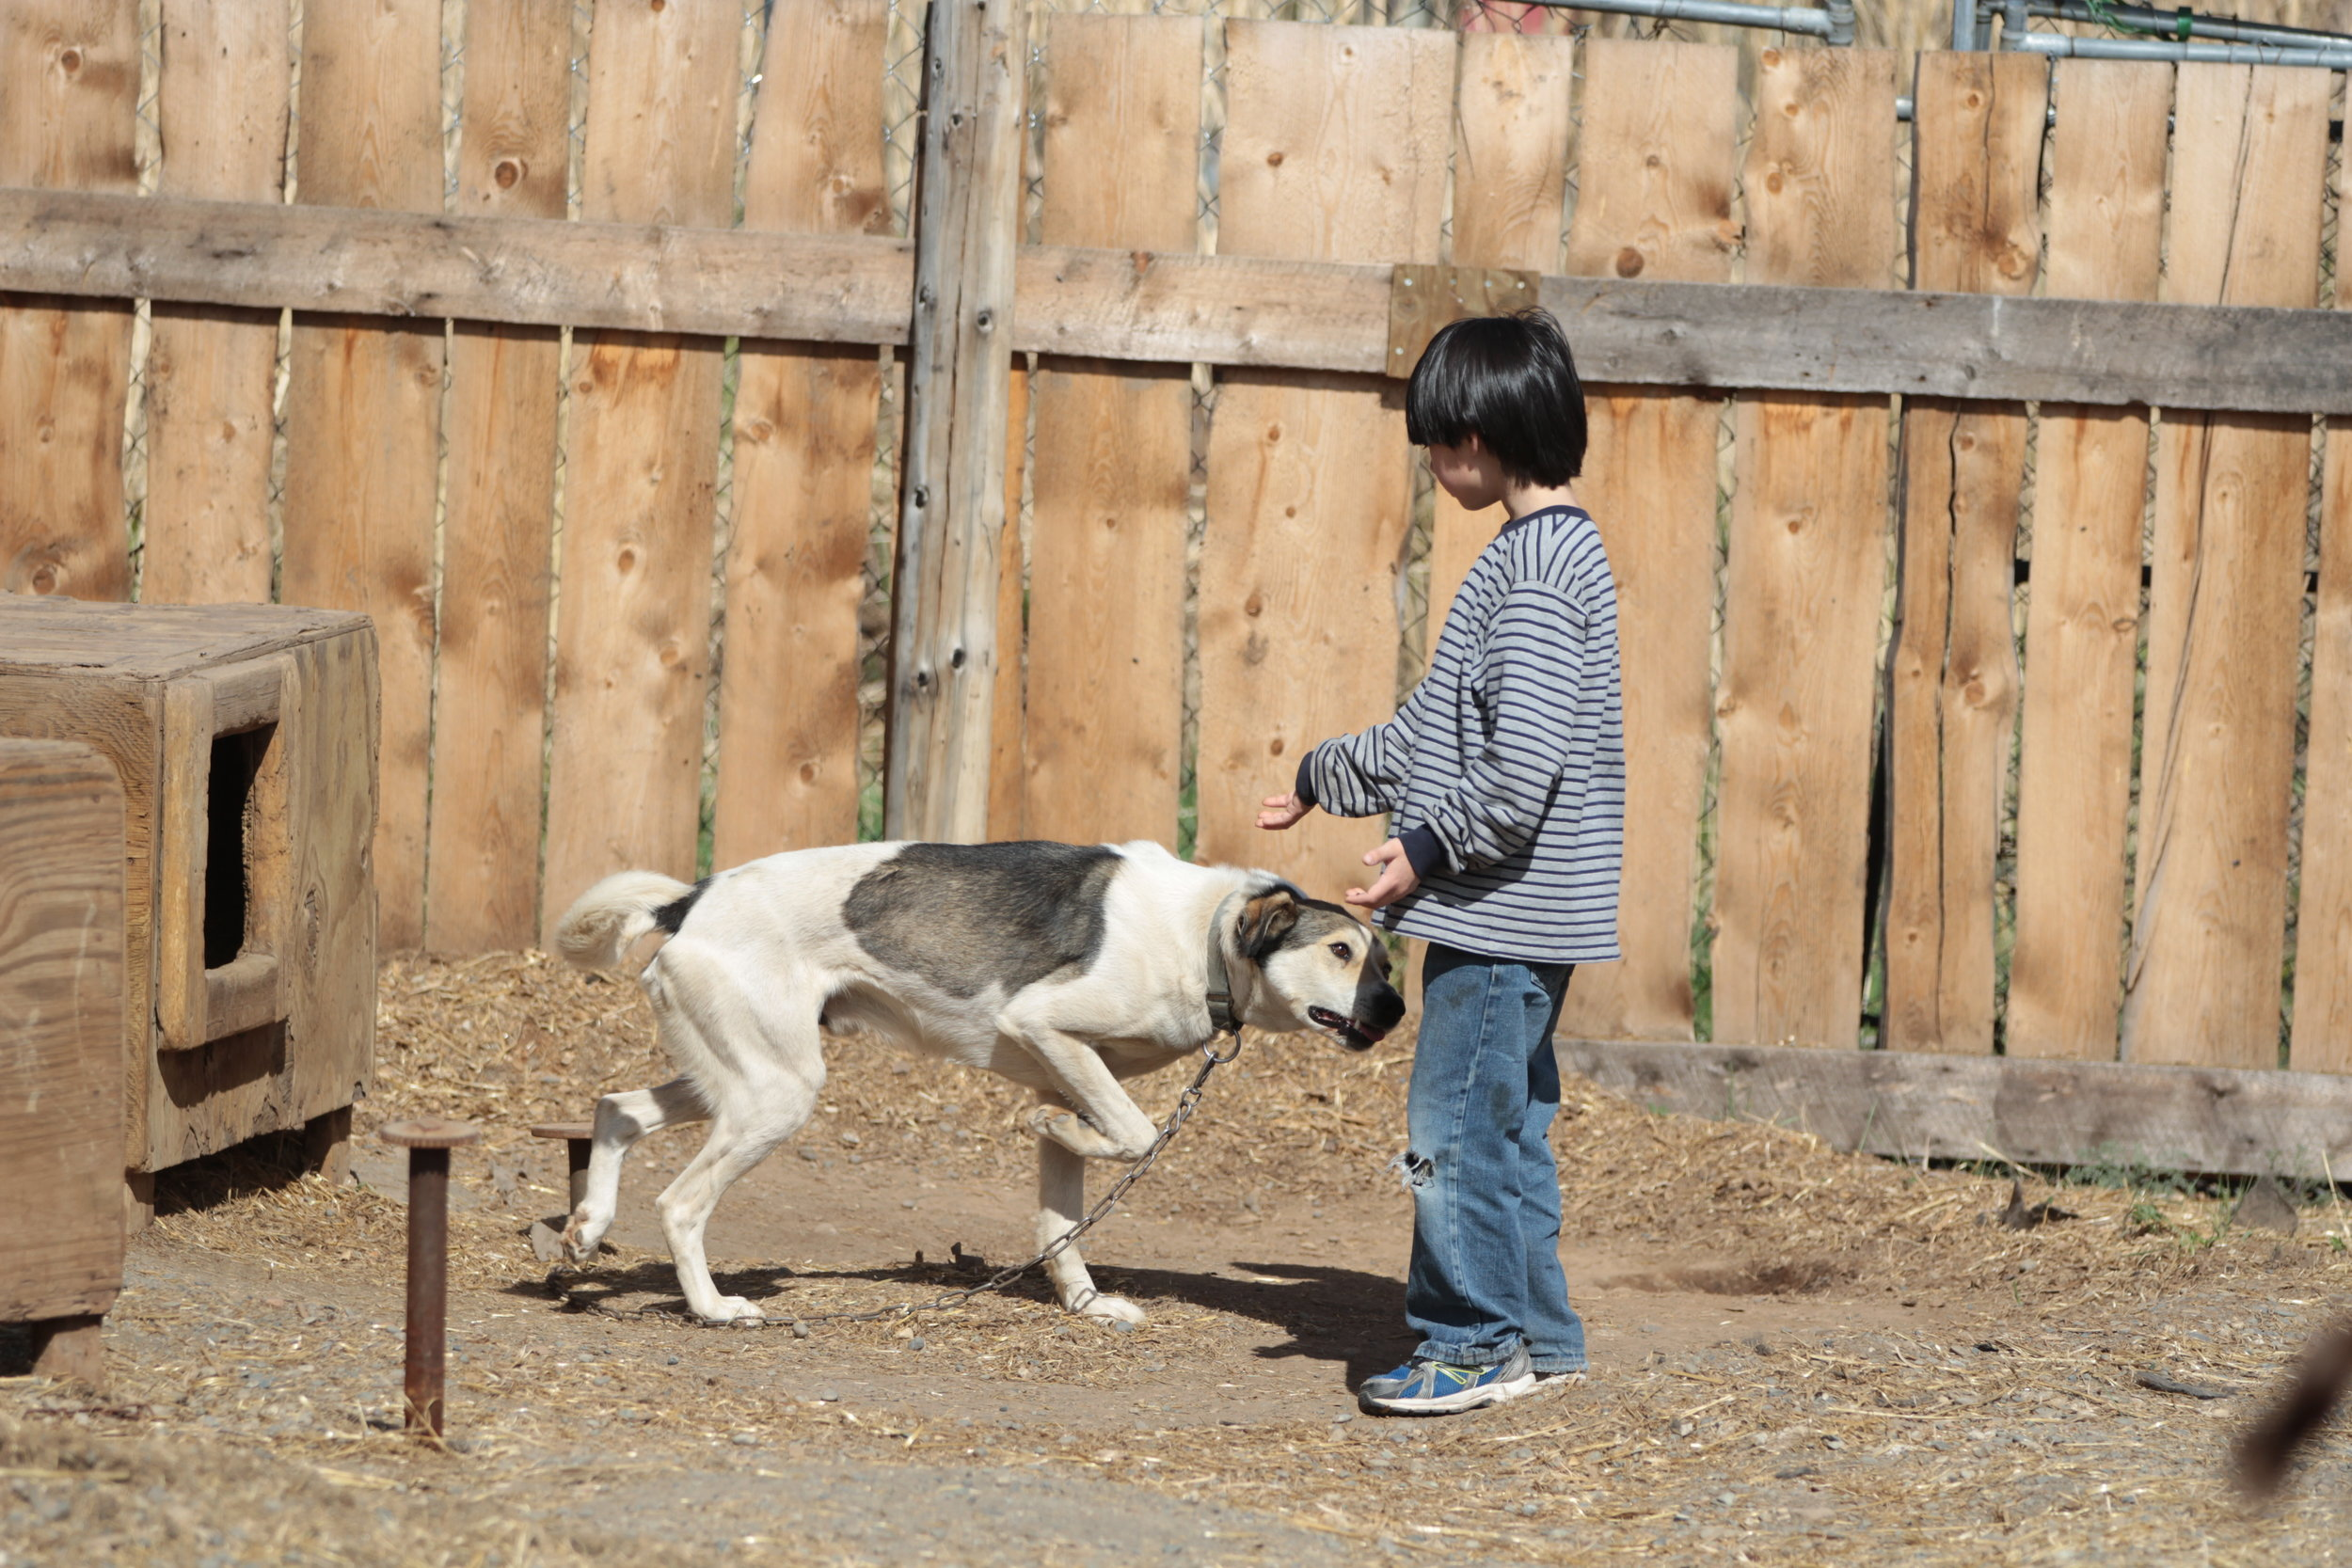 Tanacross student with dog in yard.